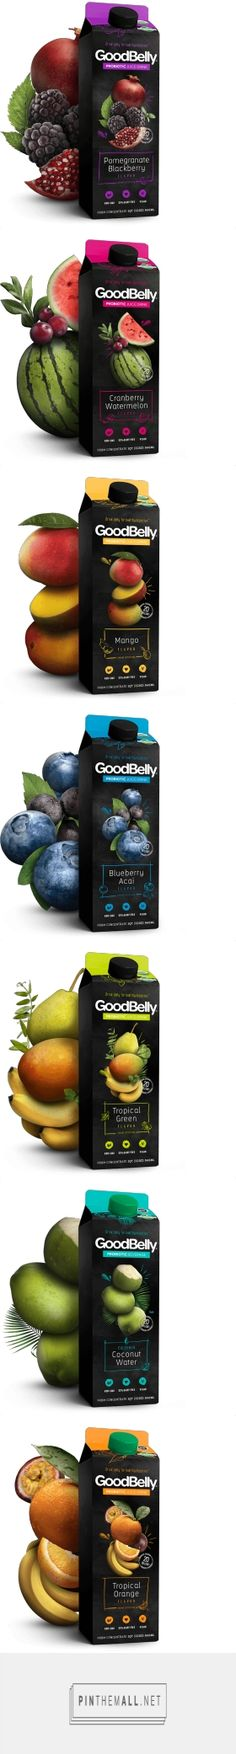 GoodBelly By The Glass probiotic fruit drink designed by LRXD. Pin curated by…